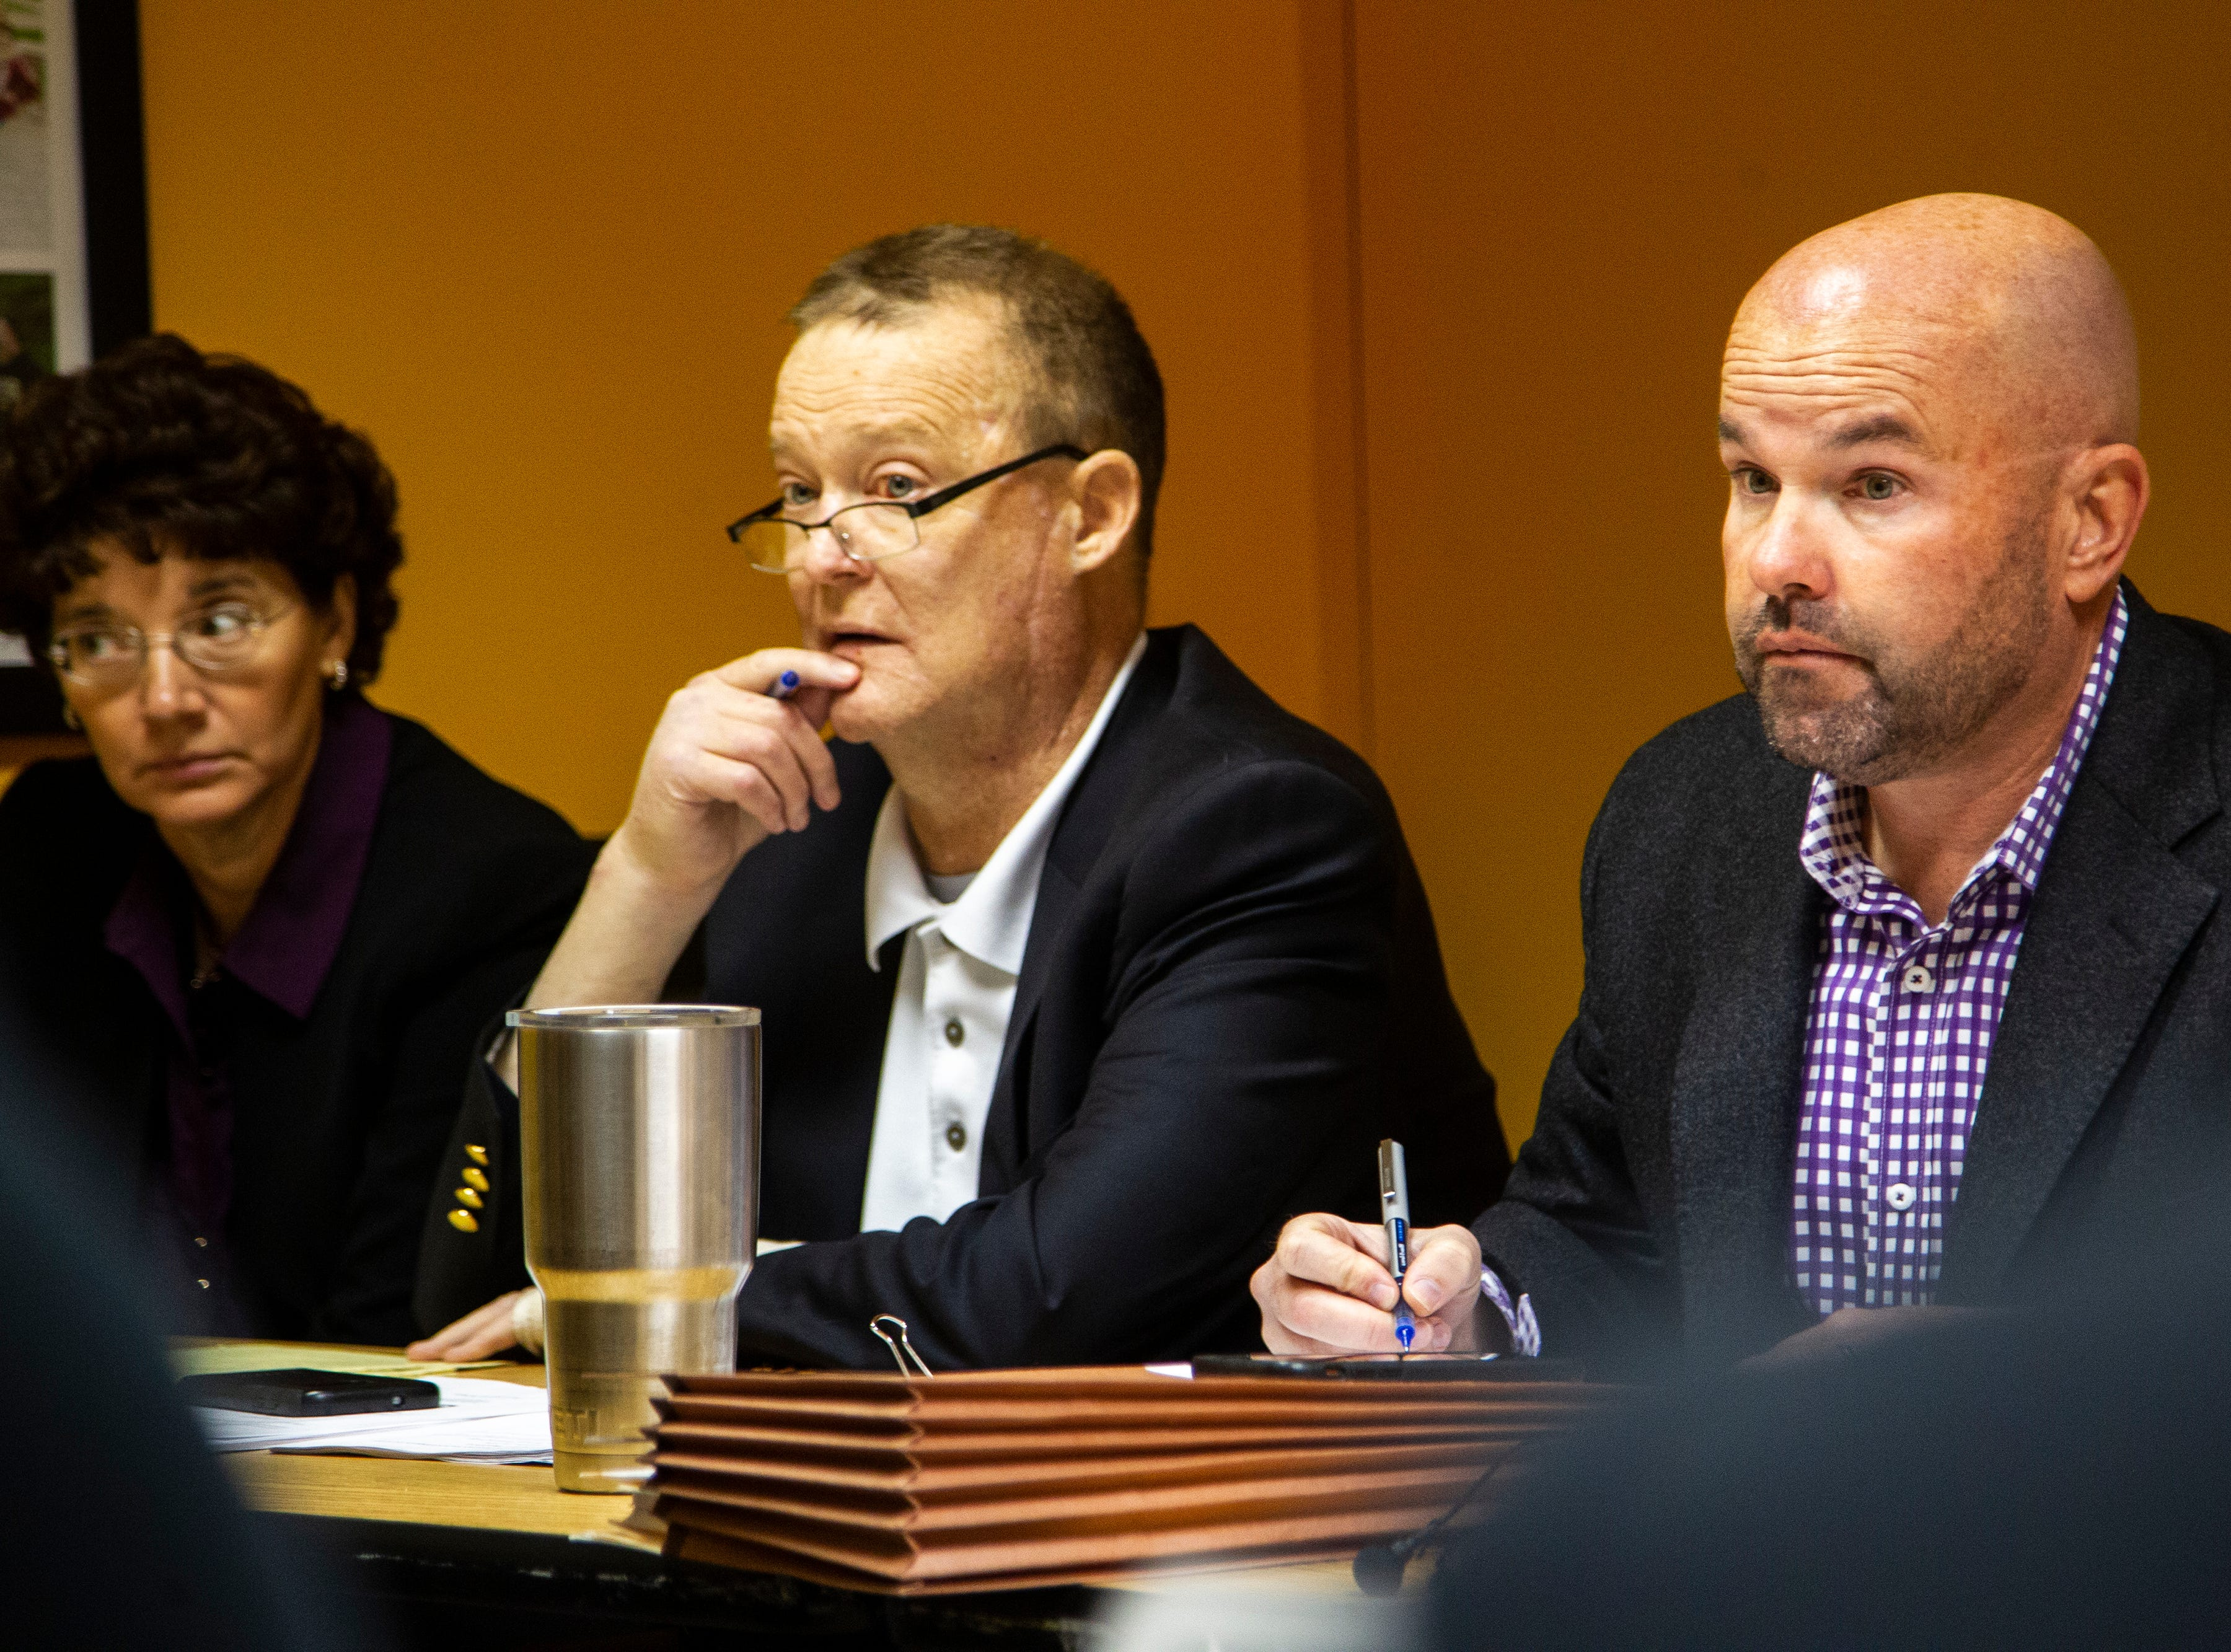 Regents lawyer Mike Galloway, right, takes notes during a contract proposal from the Iowa Board of Regents on Wednesday, Dec. 12, 2018, at the Iowa Memorial Union in Iowa City.